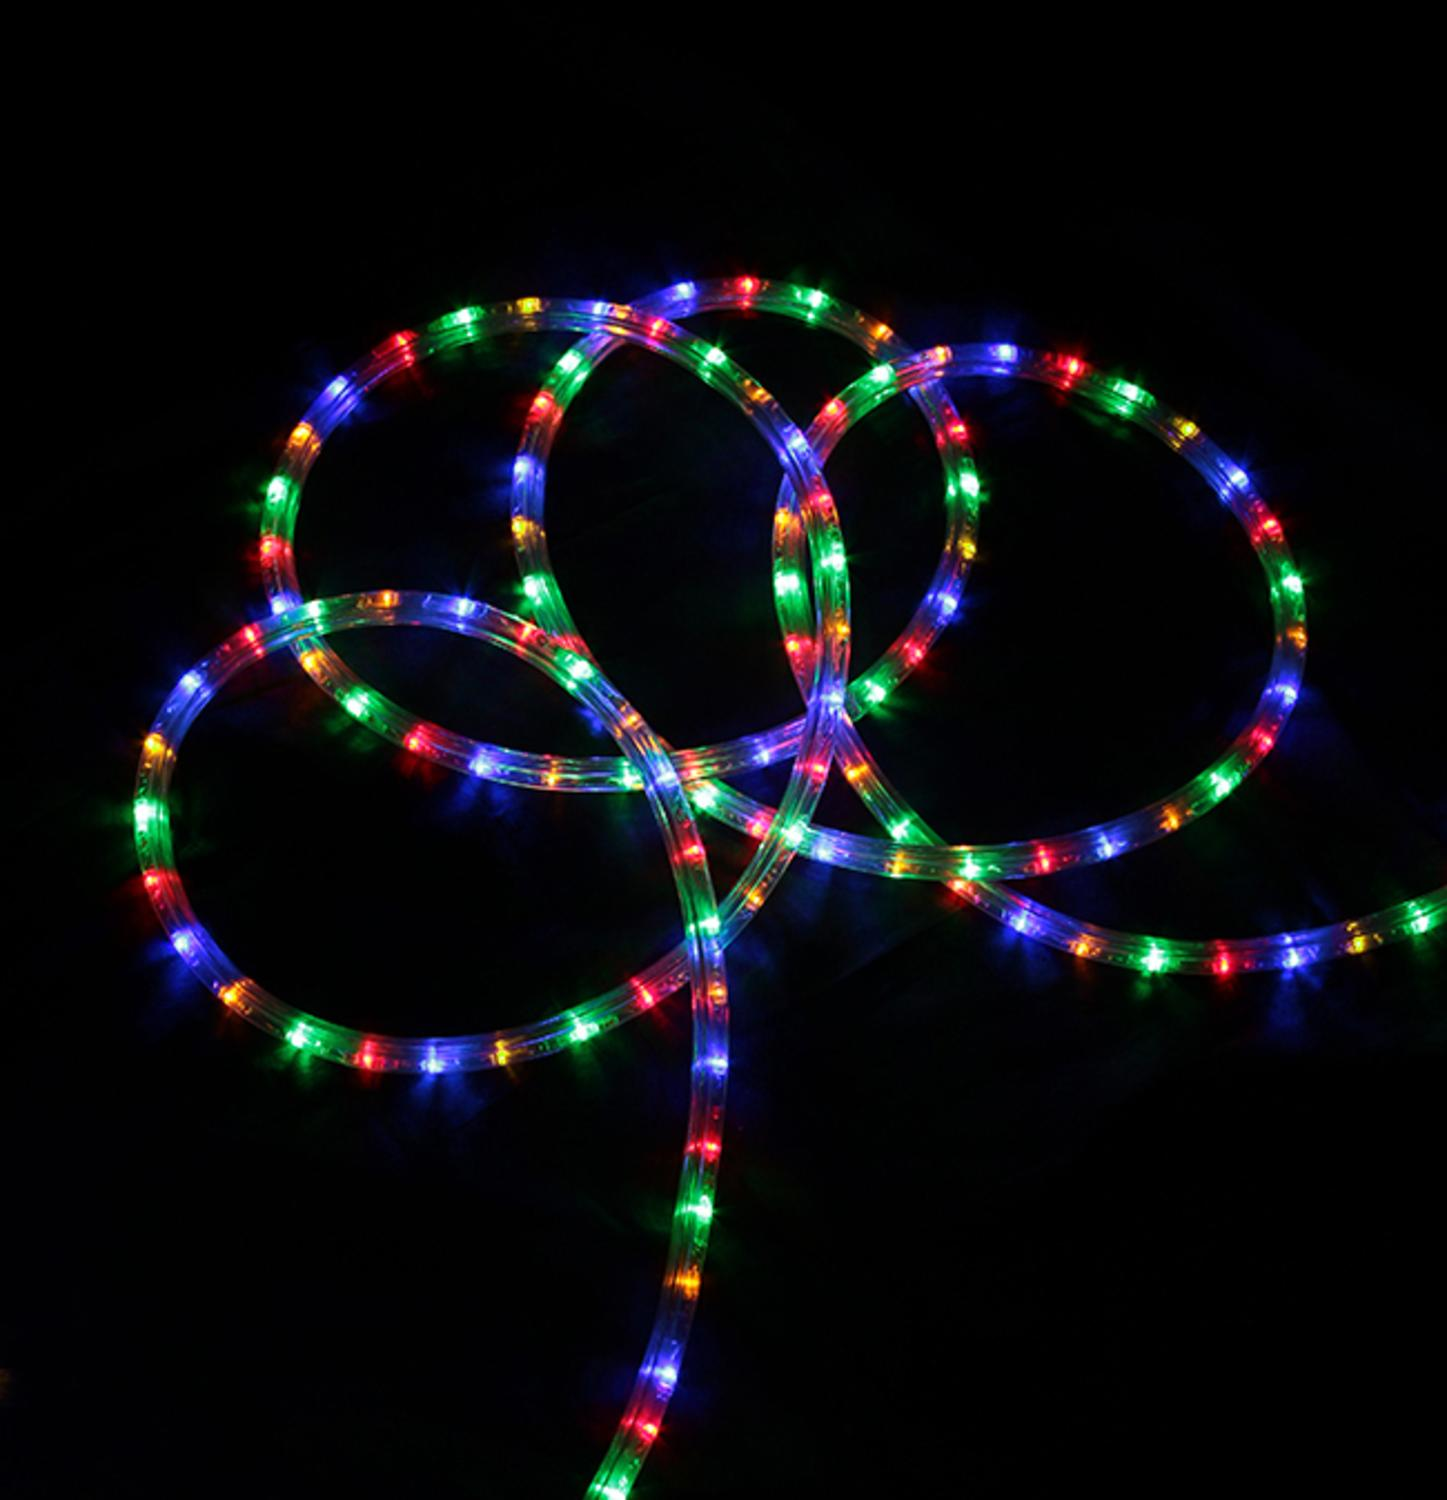 18 multi color led indoor outdoor christmas rope lights walmart com 18 multi color led indoor outdoor christmas rope lights walmart rope lights for